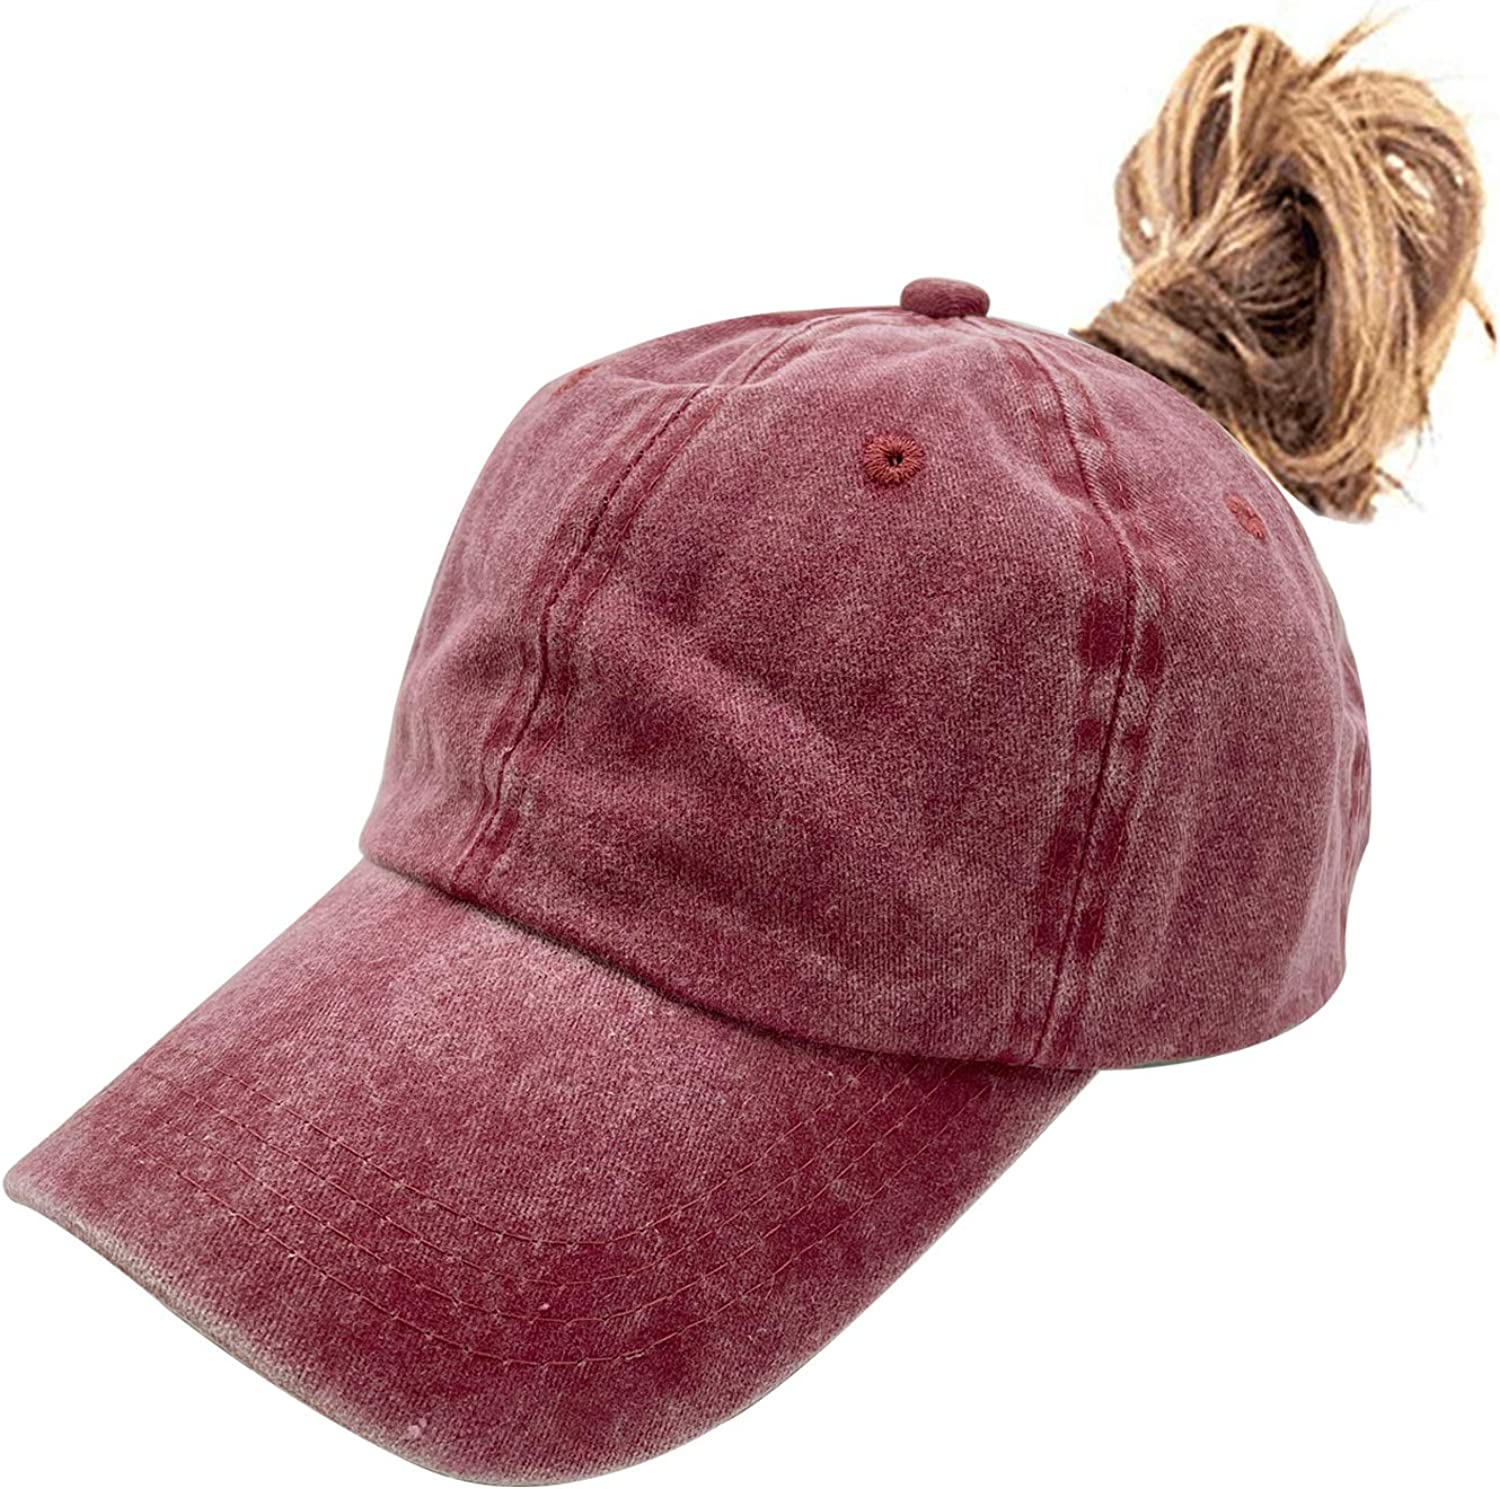 Waldeal Women's High Ponytail Max 75% OFF Hat Denver Mall Messy with Distressed Bun Hole